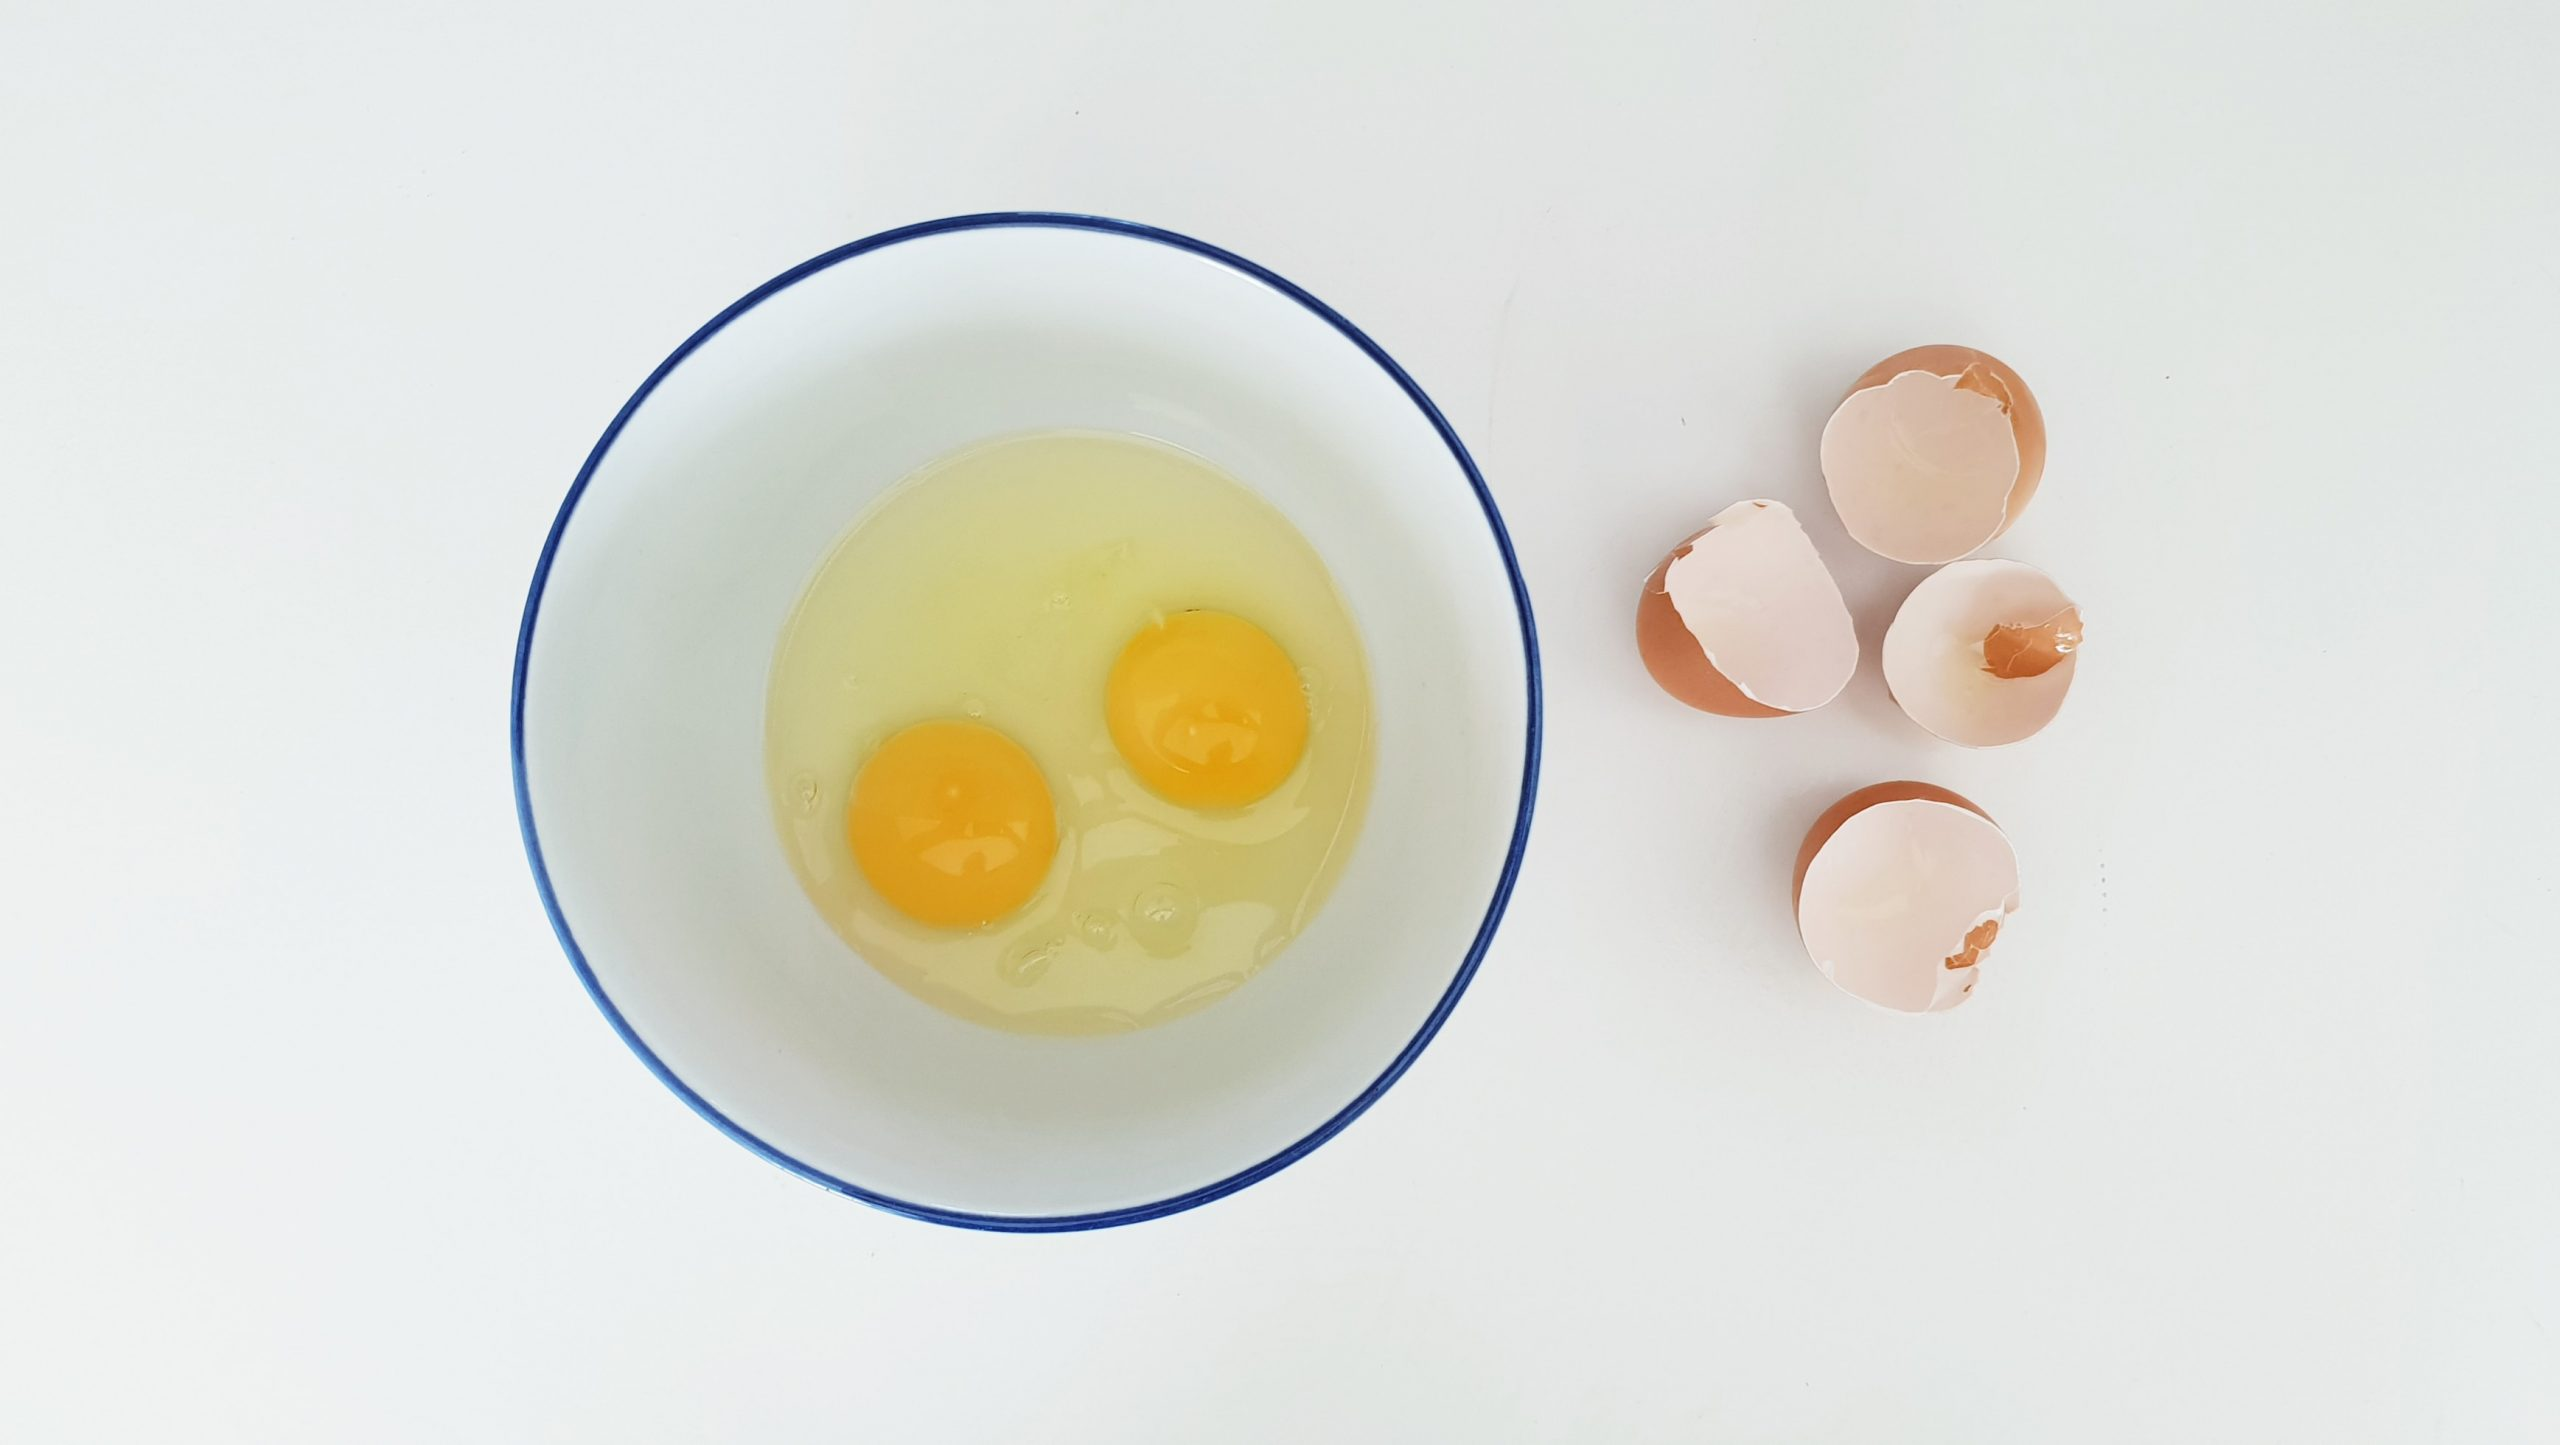 How To Perfectly Crack An Egg And Fry It Without Oil